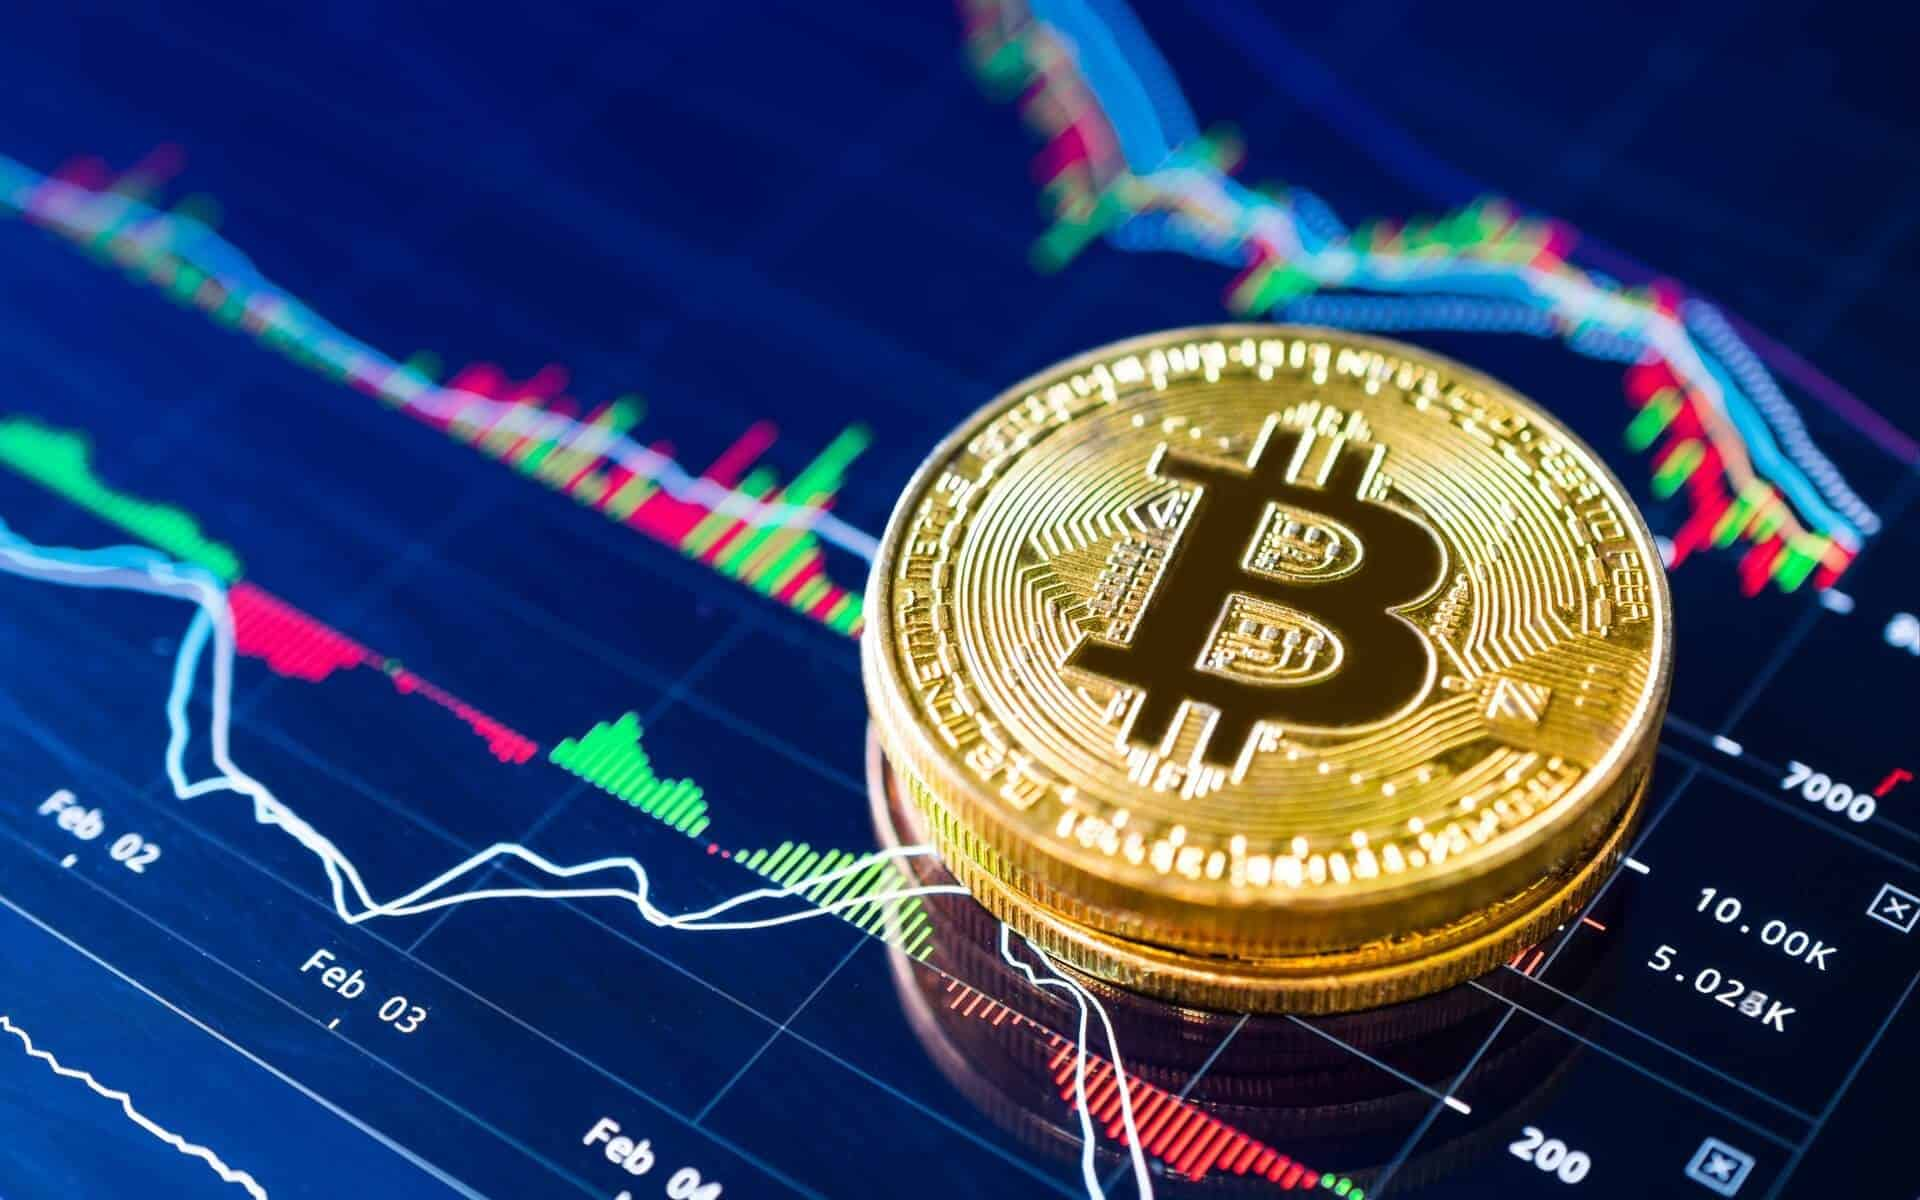 How to Trade Bitcoin | 🥇Best Bitcoin Trading Platforms for 2020